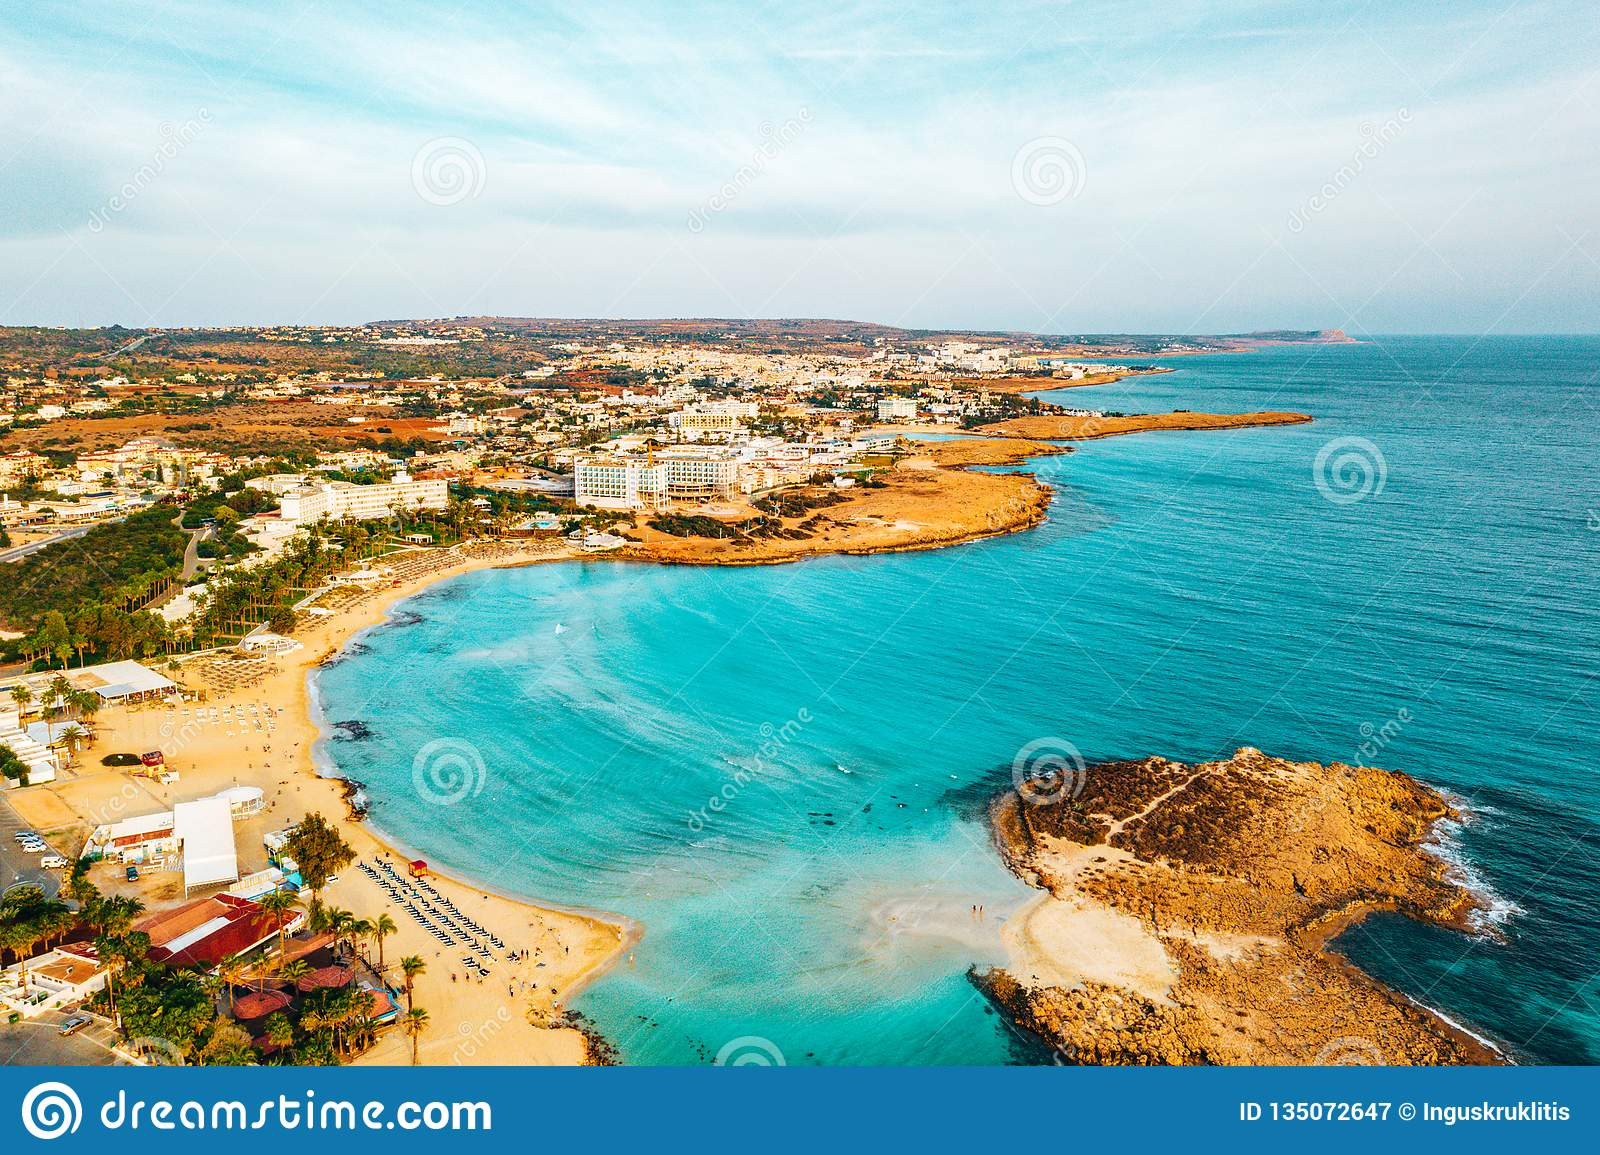 The Best Resort Area Of Cyprus Nissi Beach The Hotels